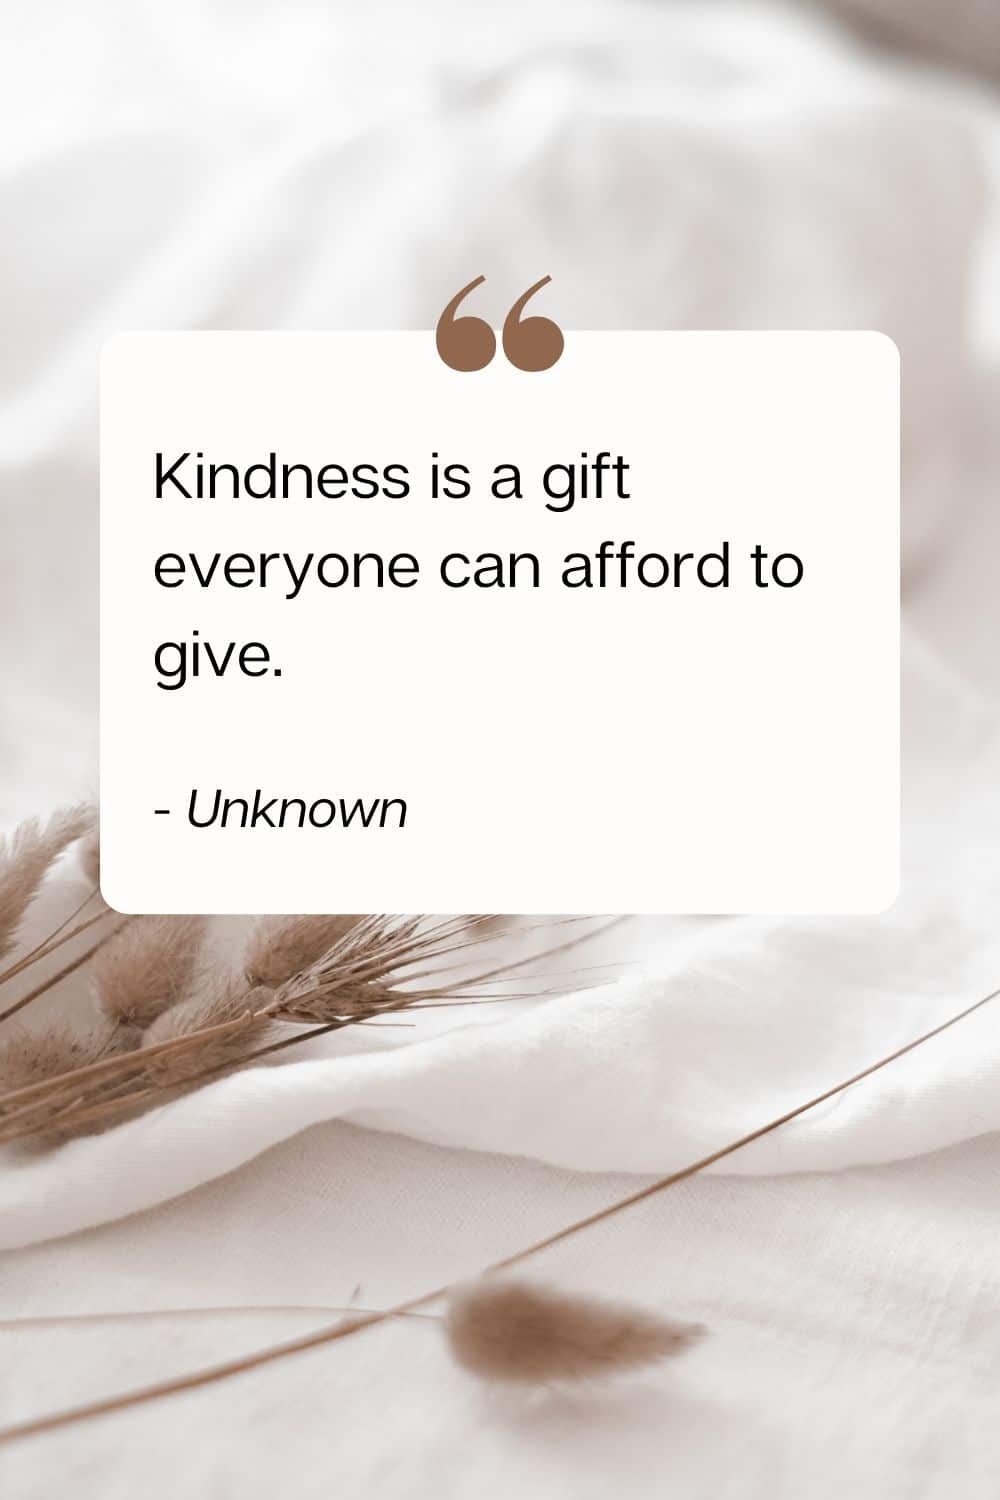 quote - Kindness is a gift everyone can afford to give. - Unknown